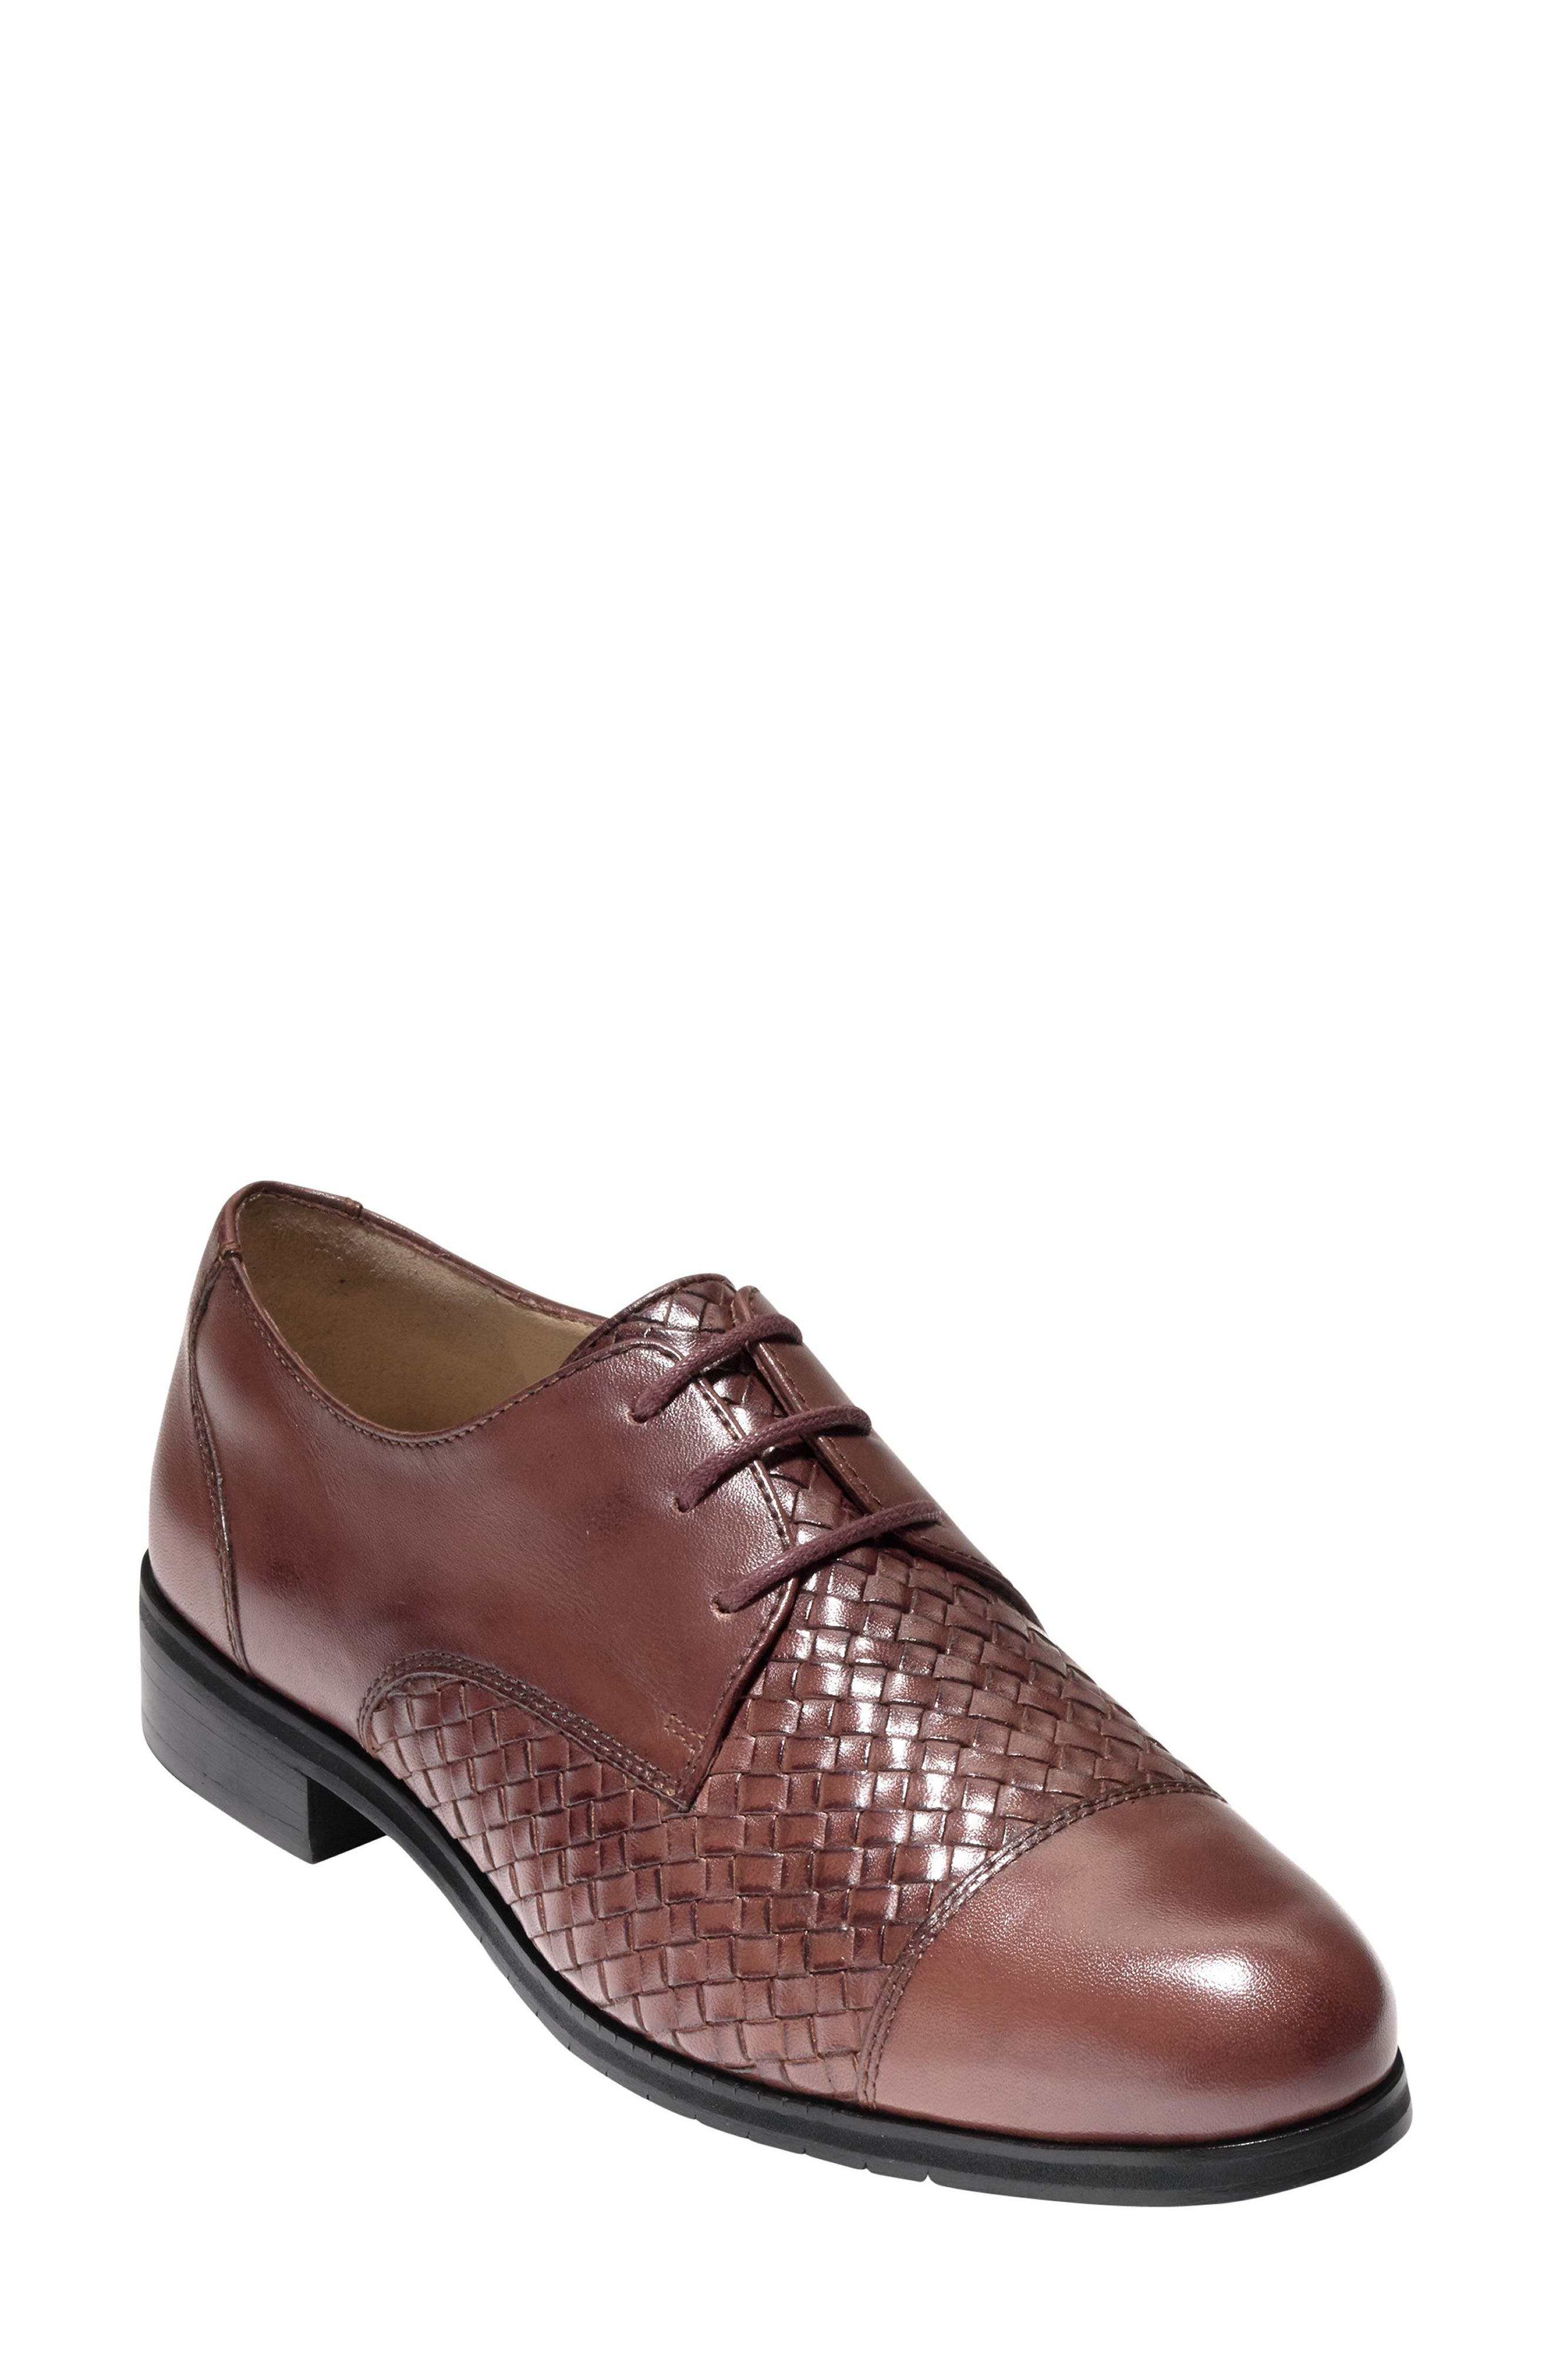 Alternate Image 1 Selected - Cole Haan Jagger Oxford (Women)